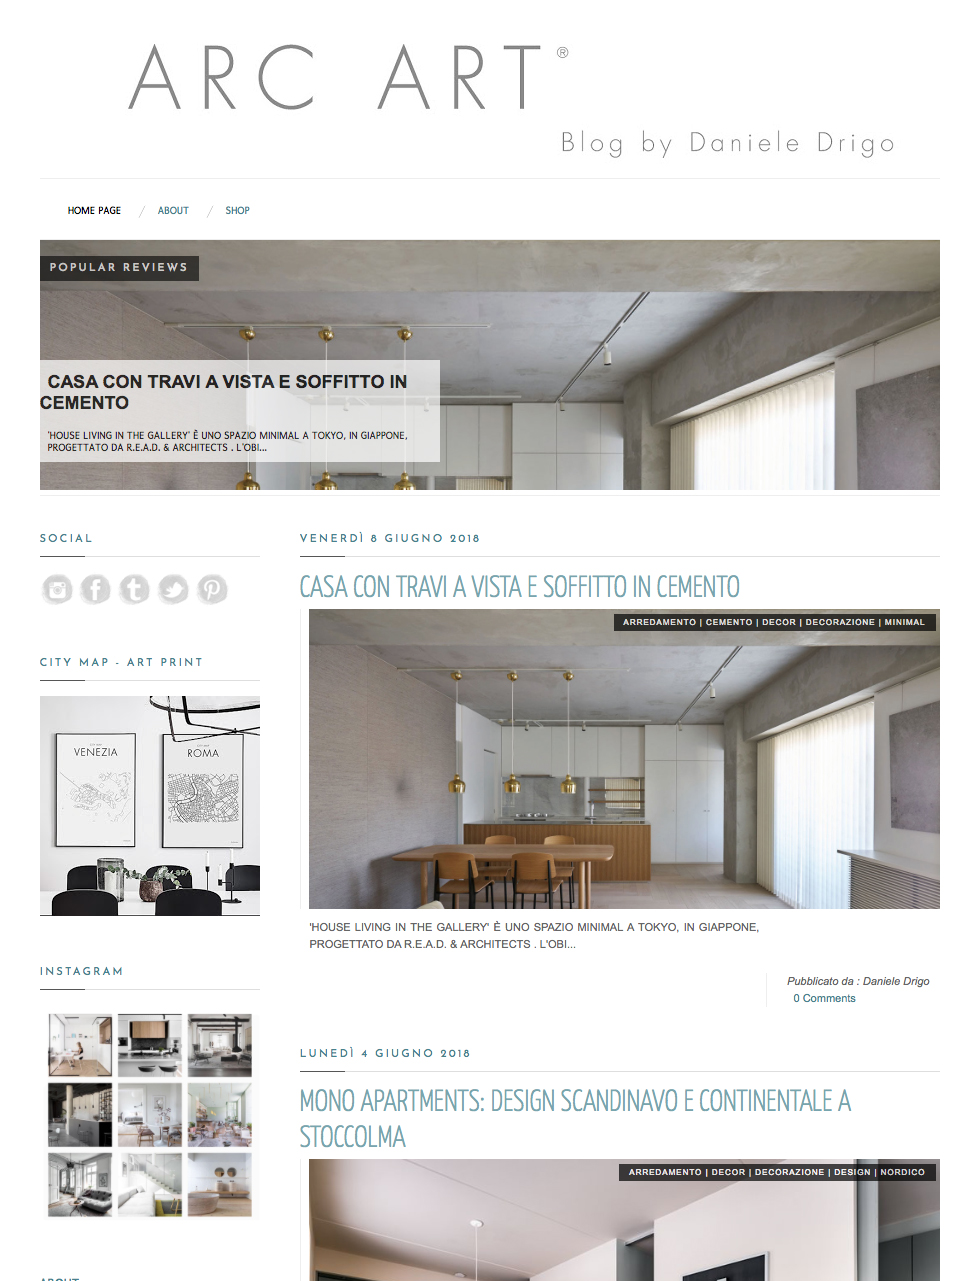 [House Living In The Gallery] Has Been Posted On Italian Blog Magazine  U201cDDArcArtu201d Introducing Architecture, Interior, Furniture, Lifestyle, Art,  ...